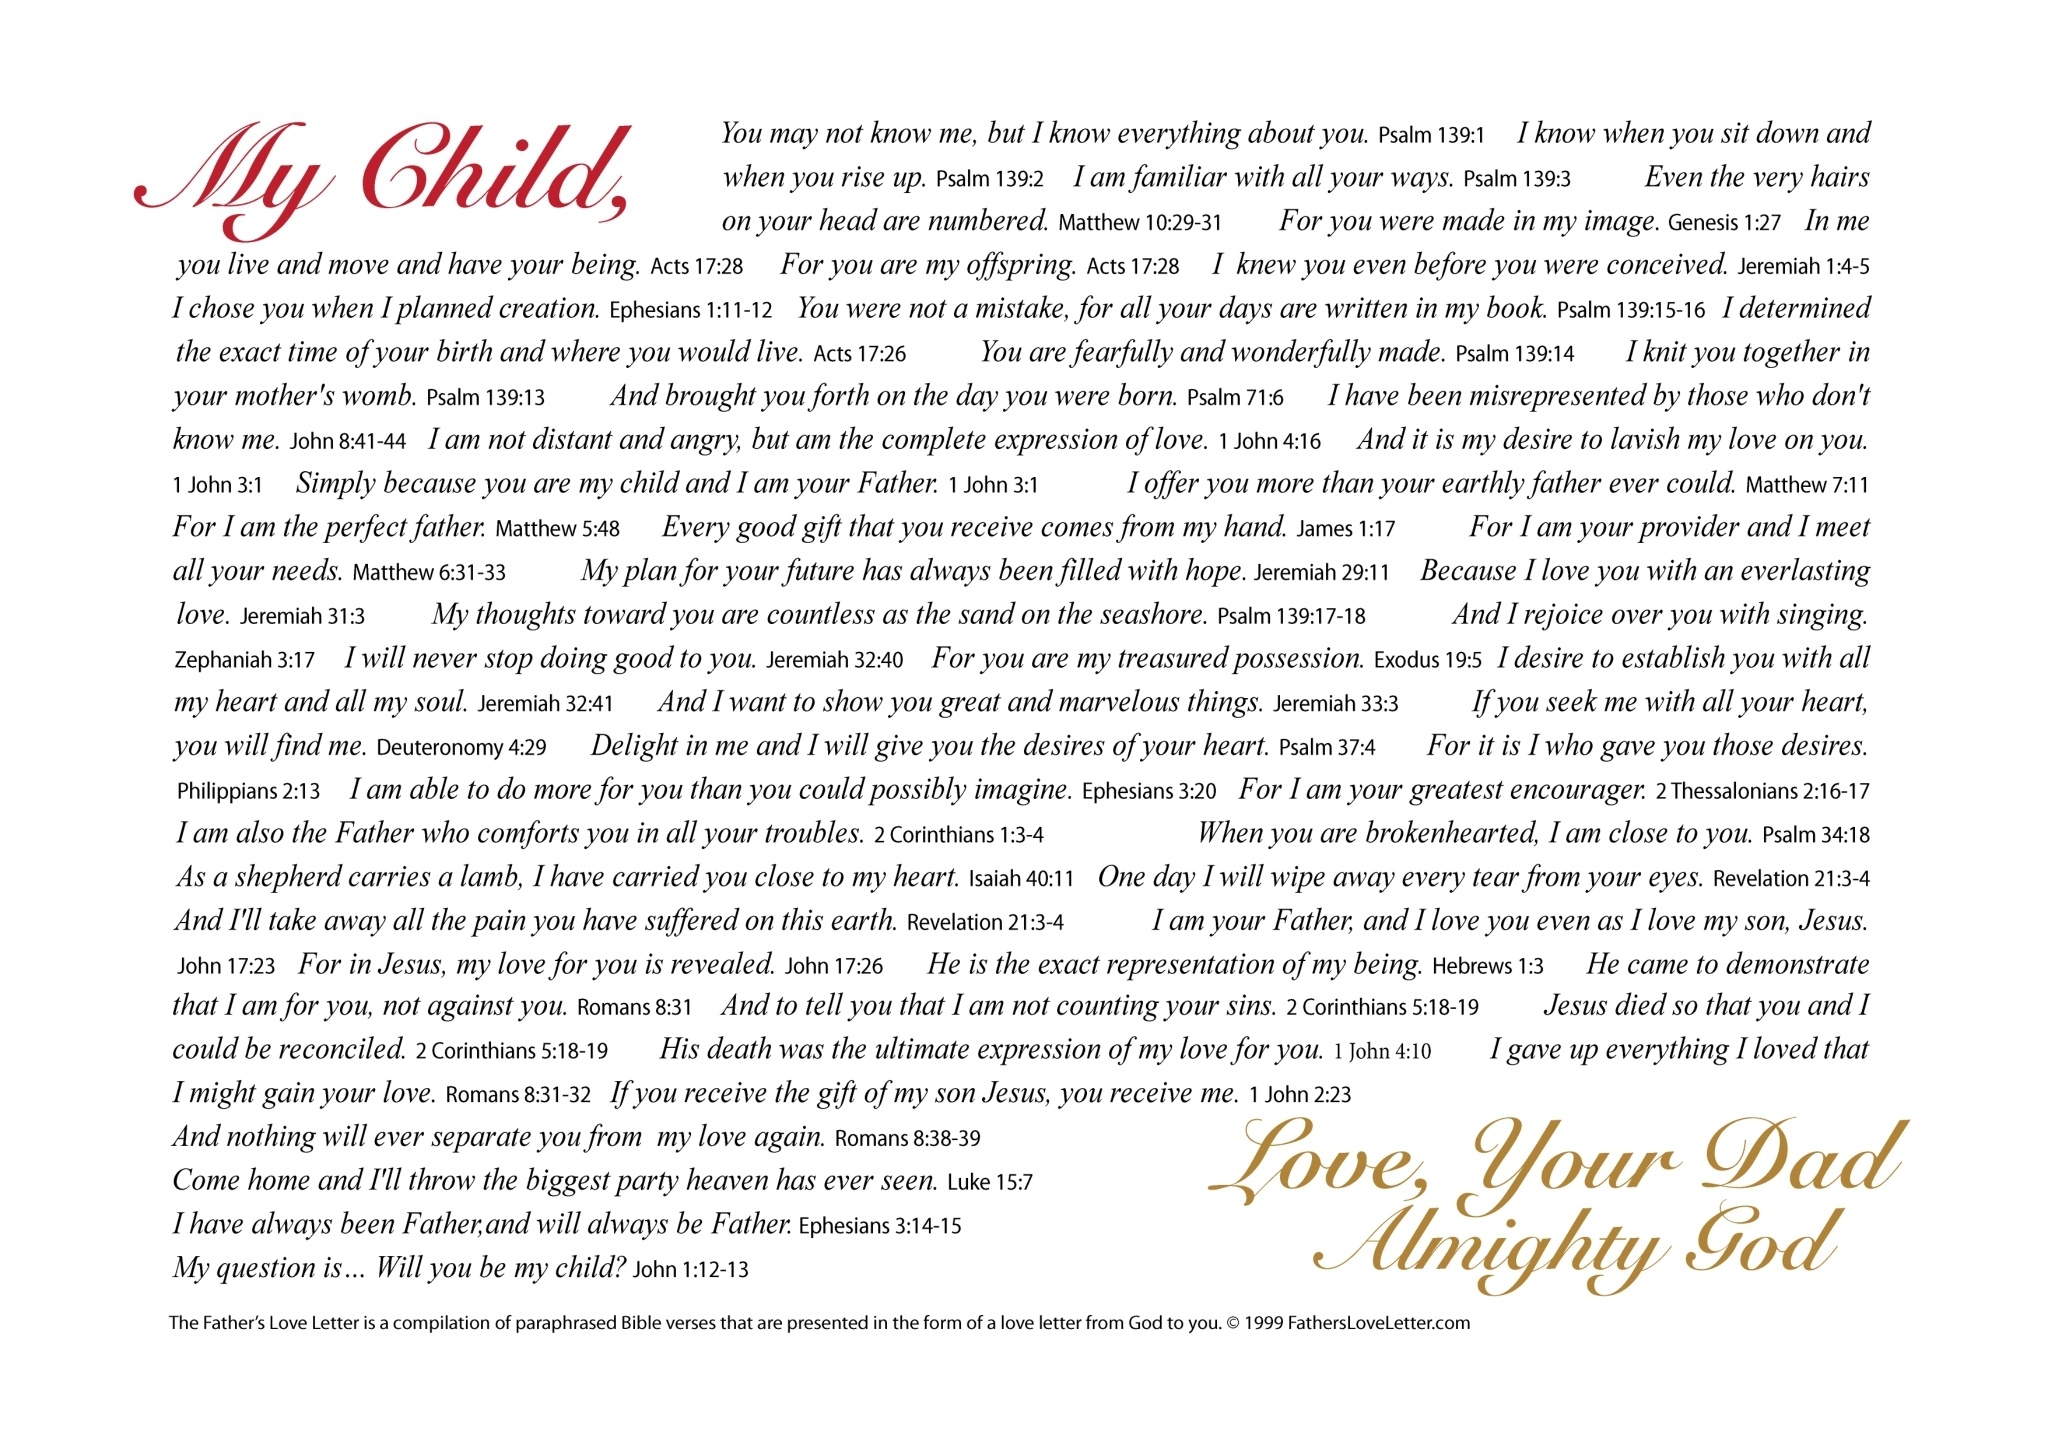 Love Letter To The Father Of My Child - Letter BestPoemView CO